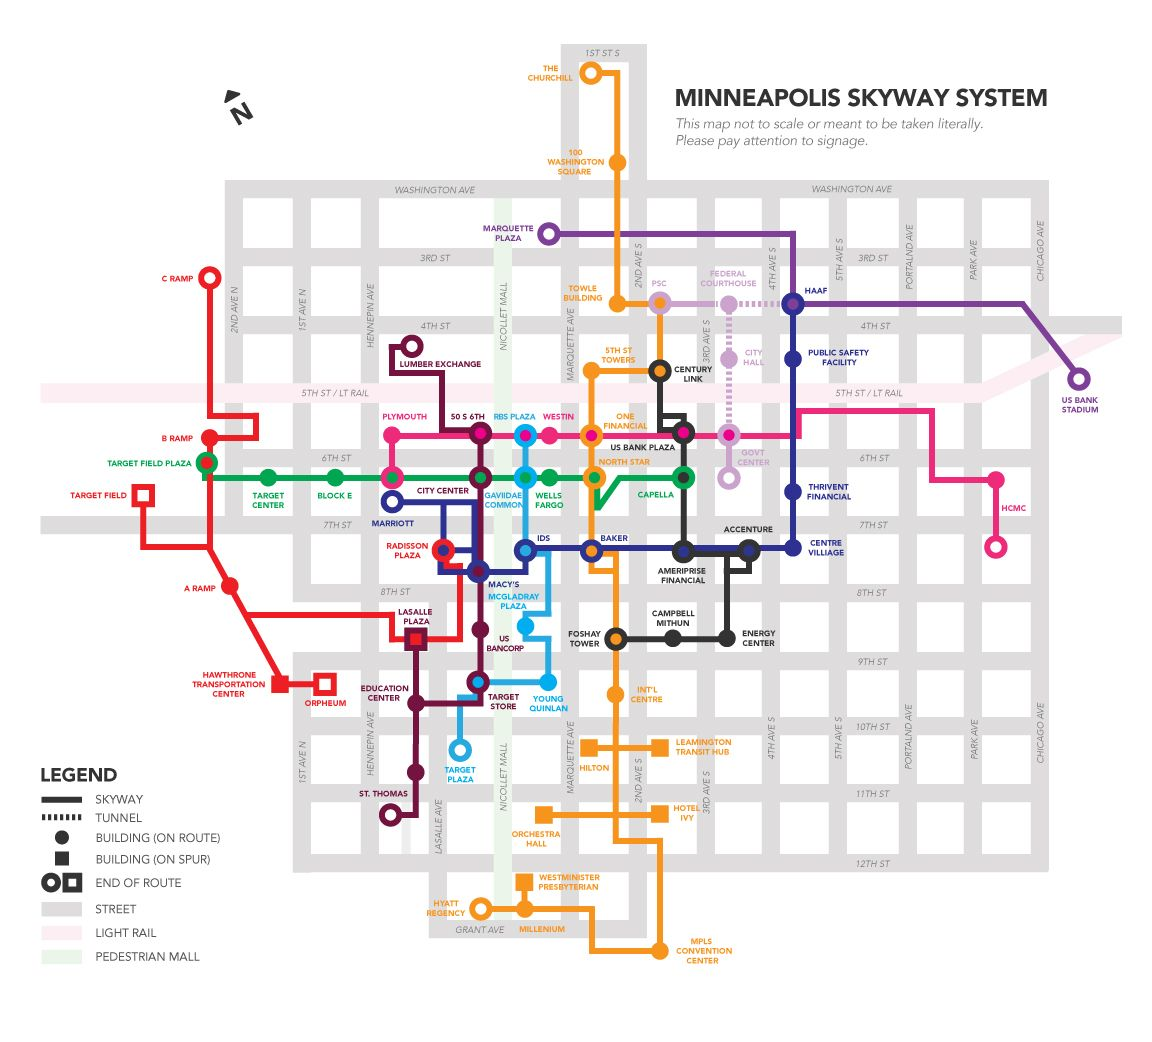 photo regarding Minneapolis Skyway Map Printable named A skyway map for Minneapolis motivated via the effort of Mimo